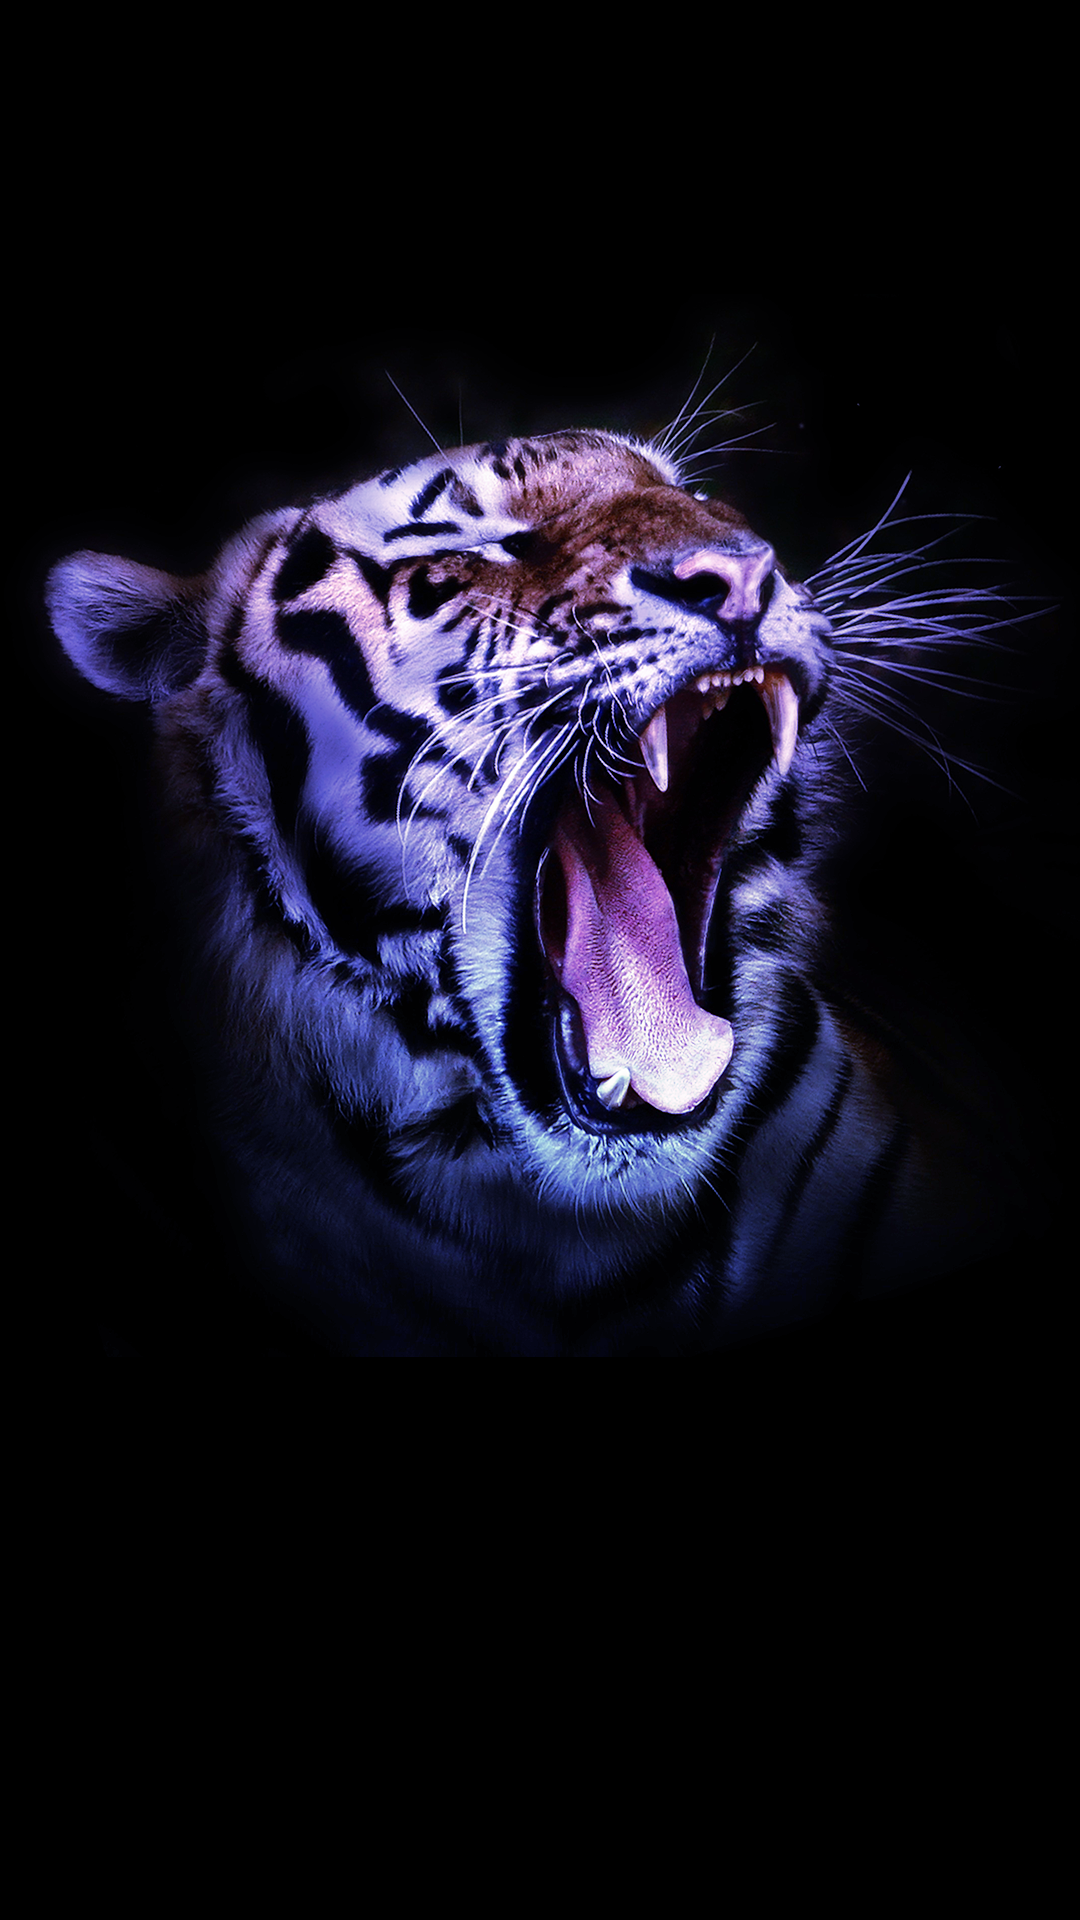 Ultra Hd Wildcat Tiger Wallpaper For Your Mobile Phone 0571